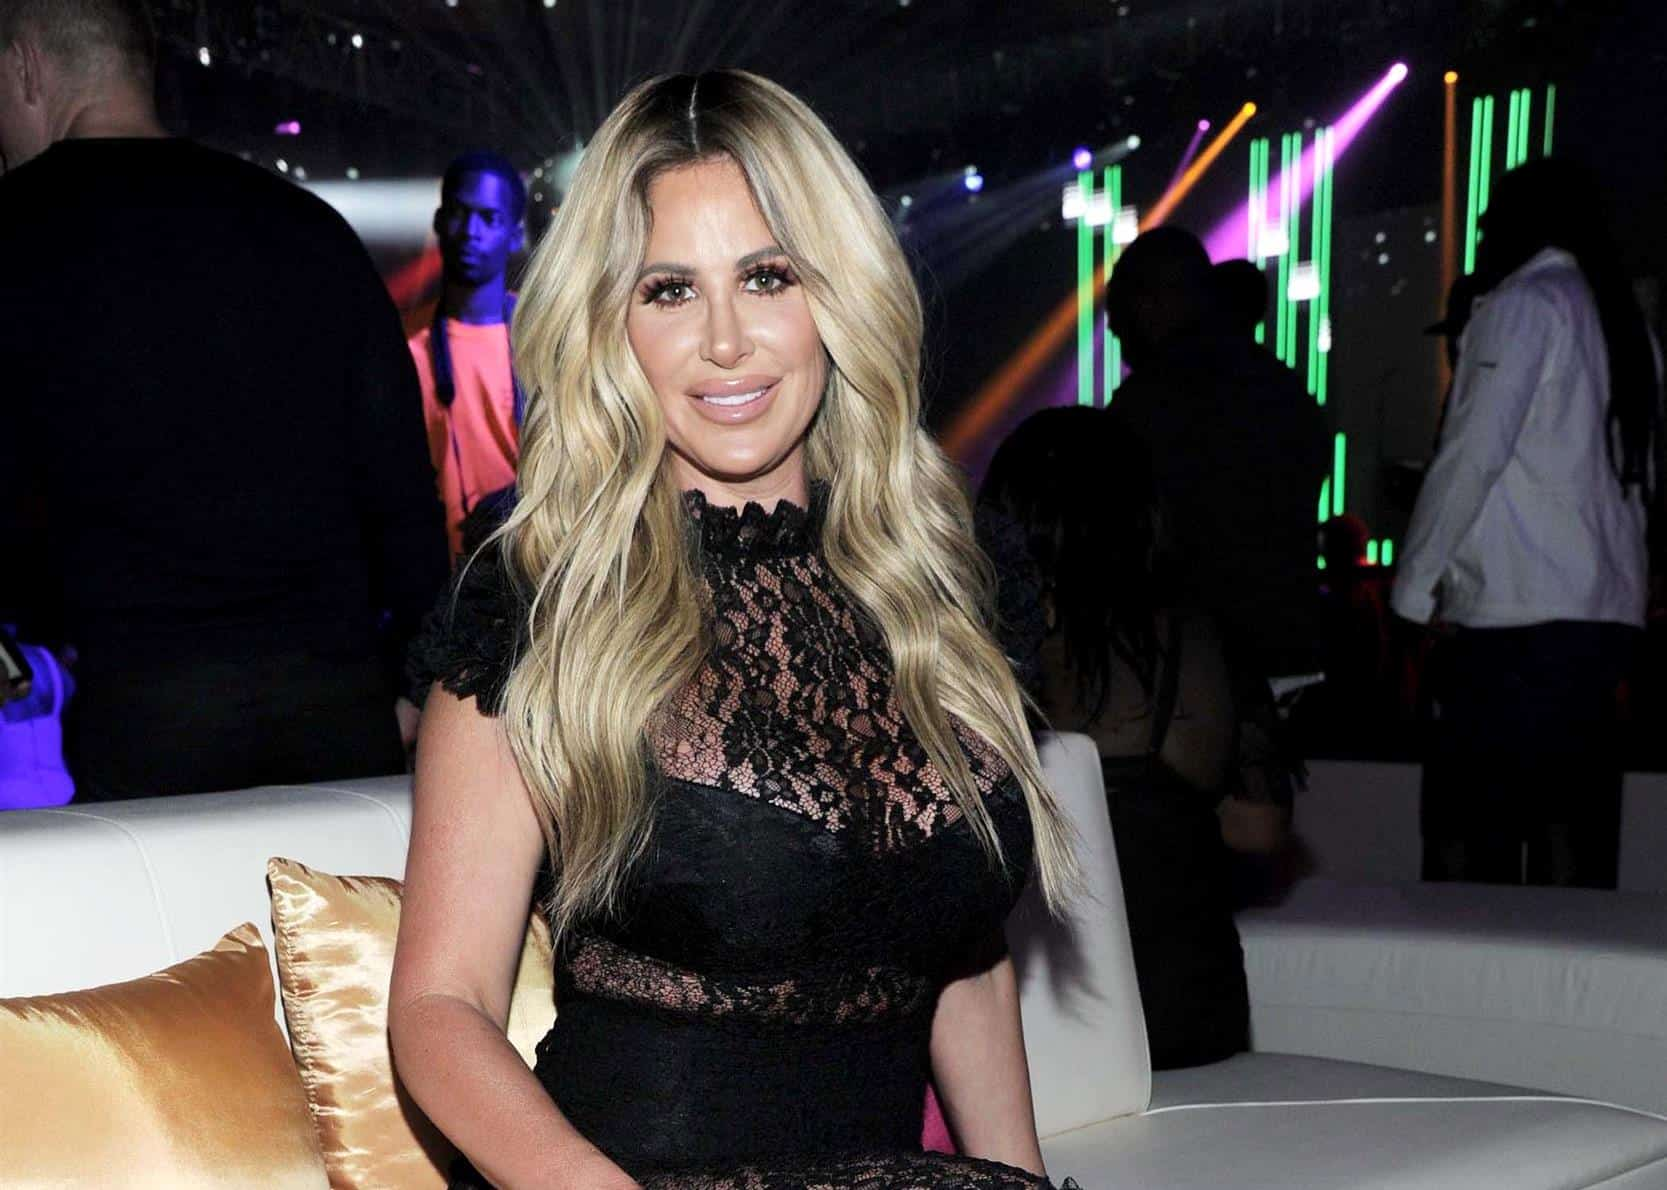 PHOTOS: Don't Be Tardy's Kim Zolciak Is Selling Her Designer Items After $215K American Express Lawsuit